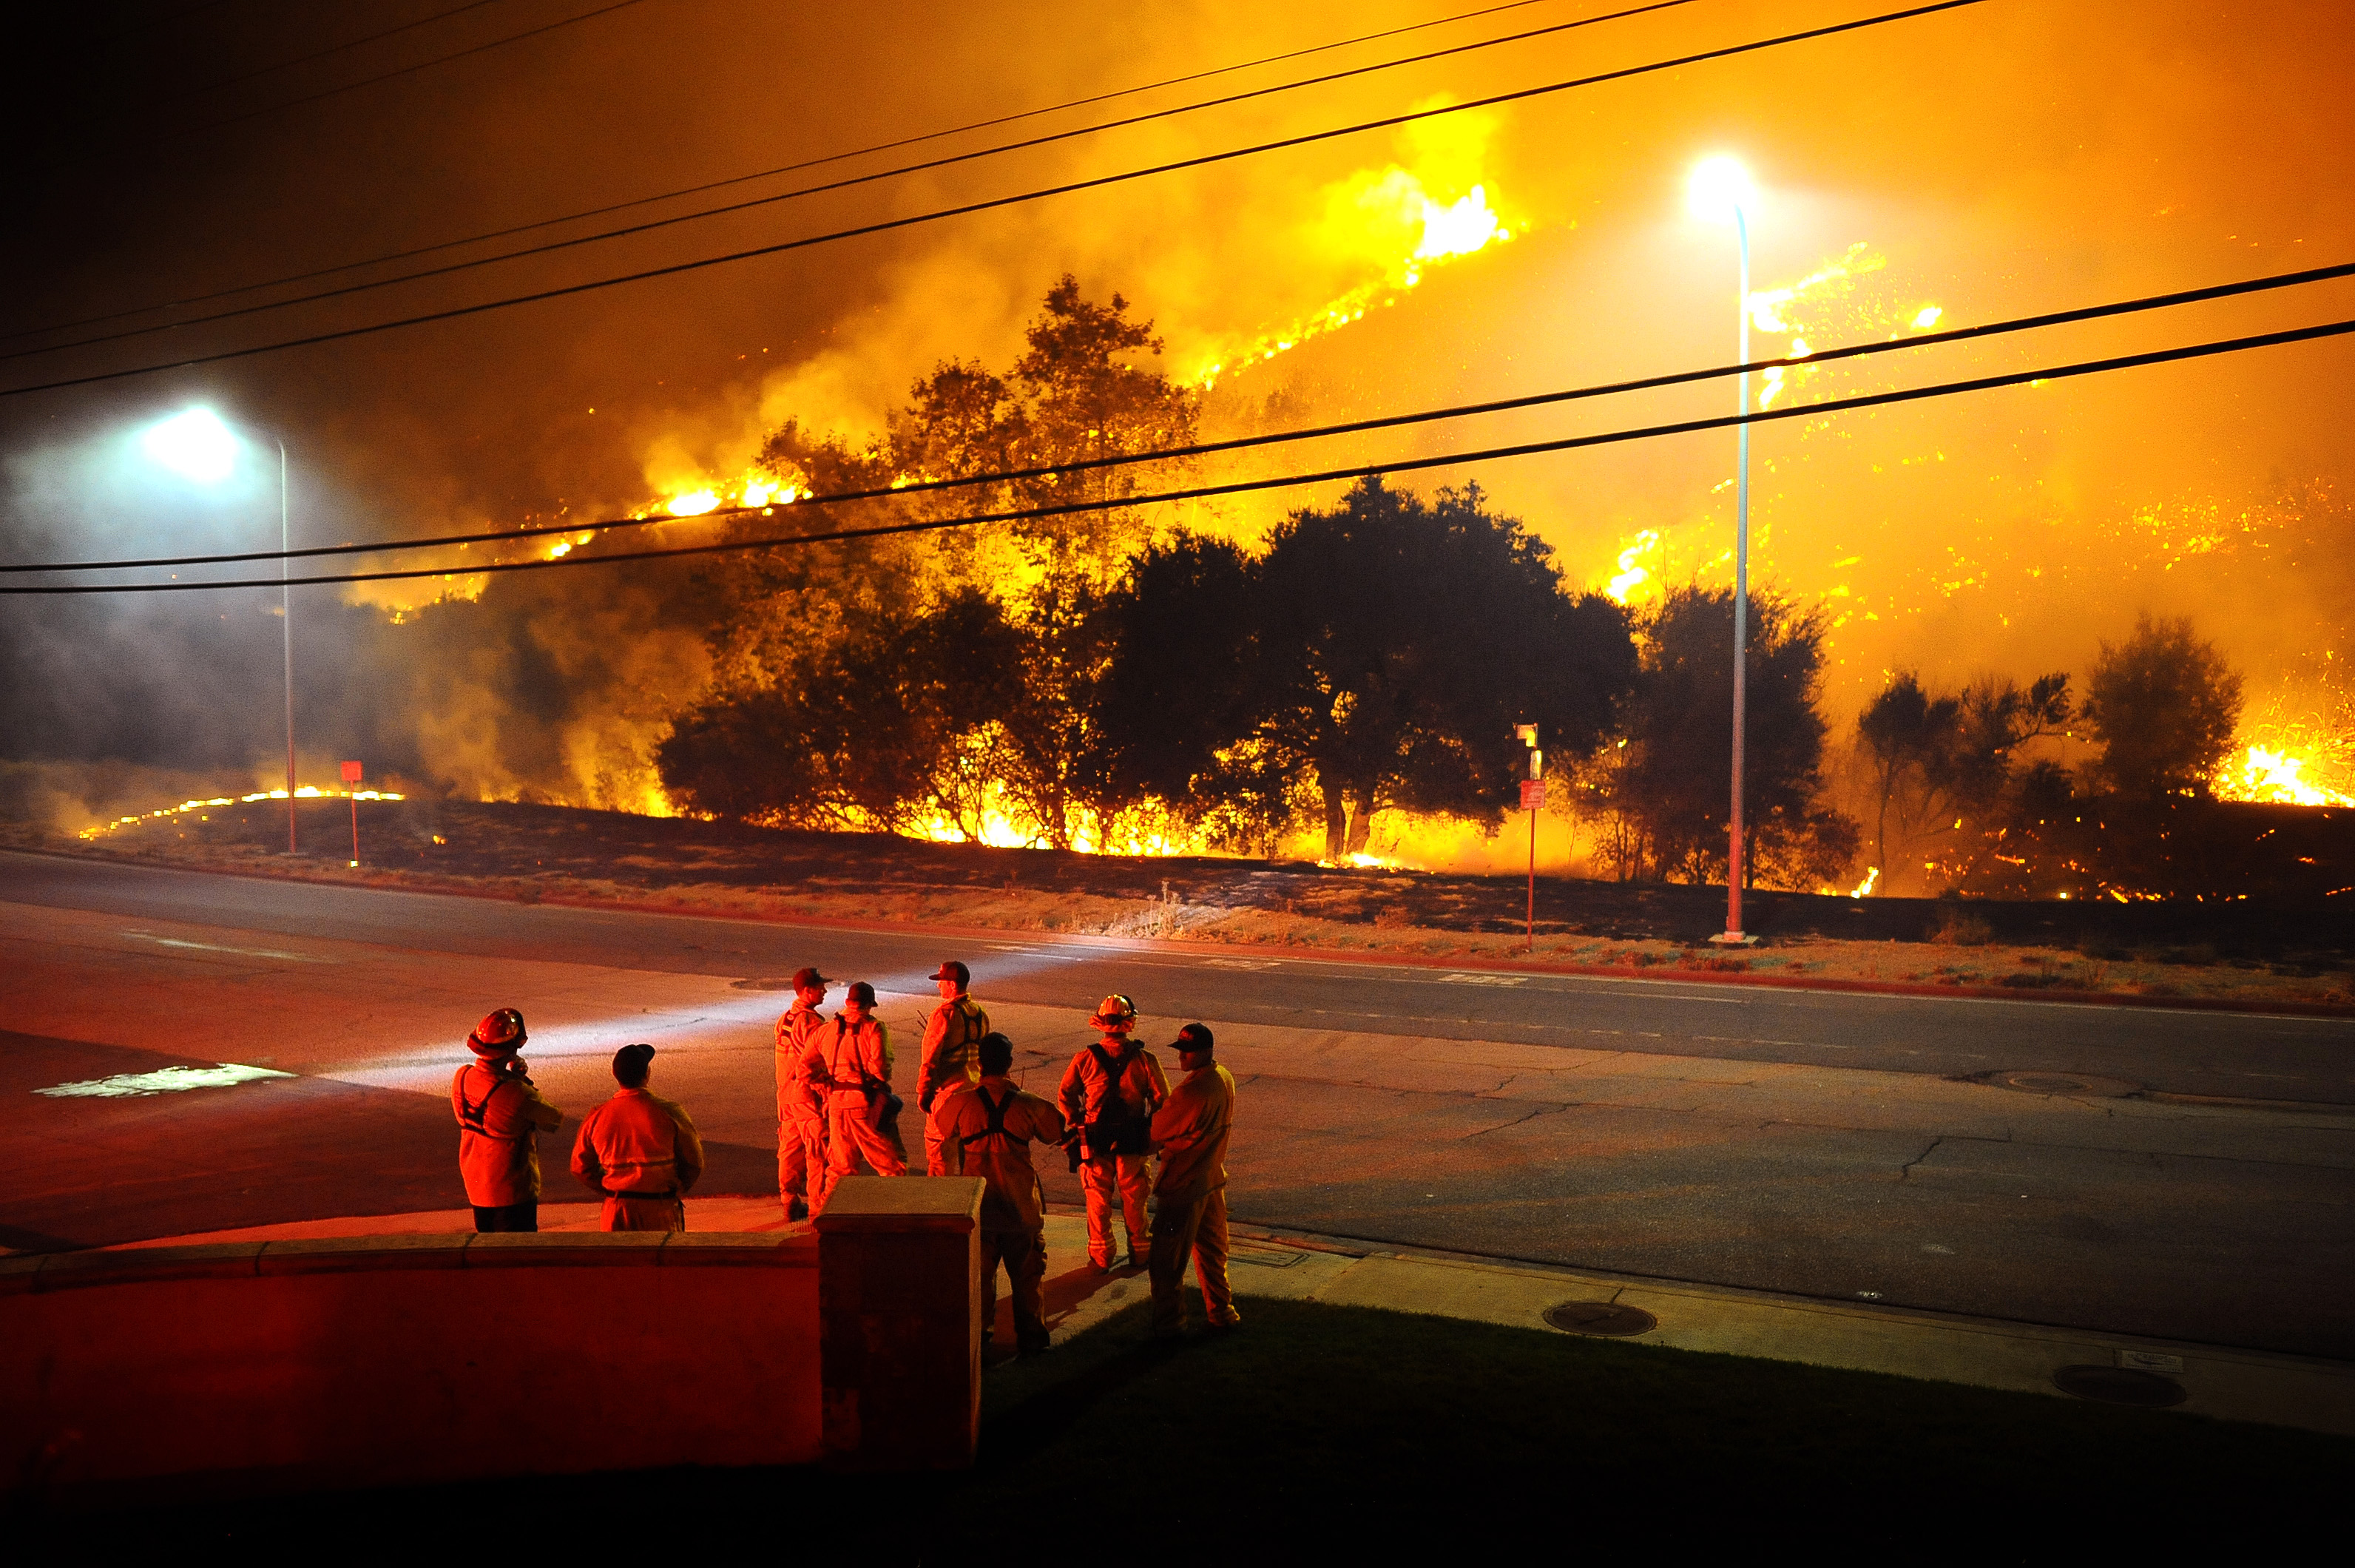 Woolsey Fire Doubles To 70,000 Acres As Winds Die Down